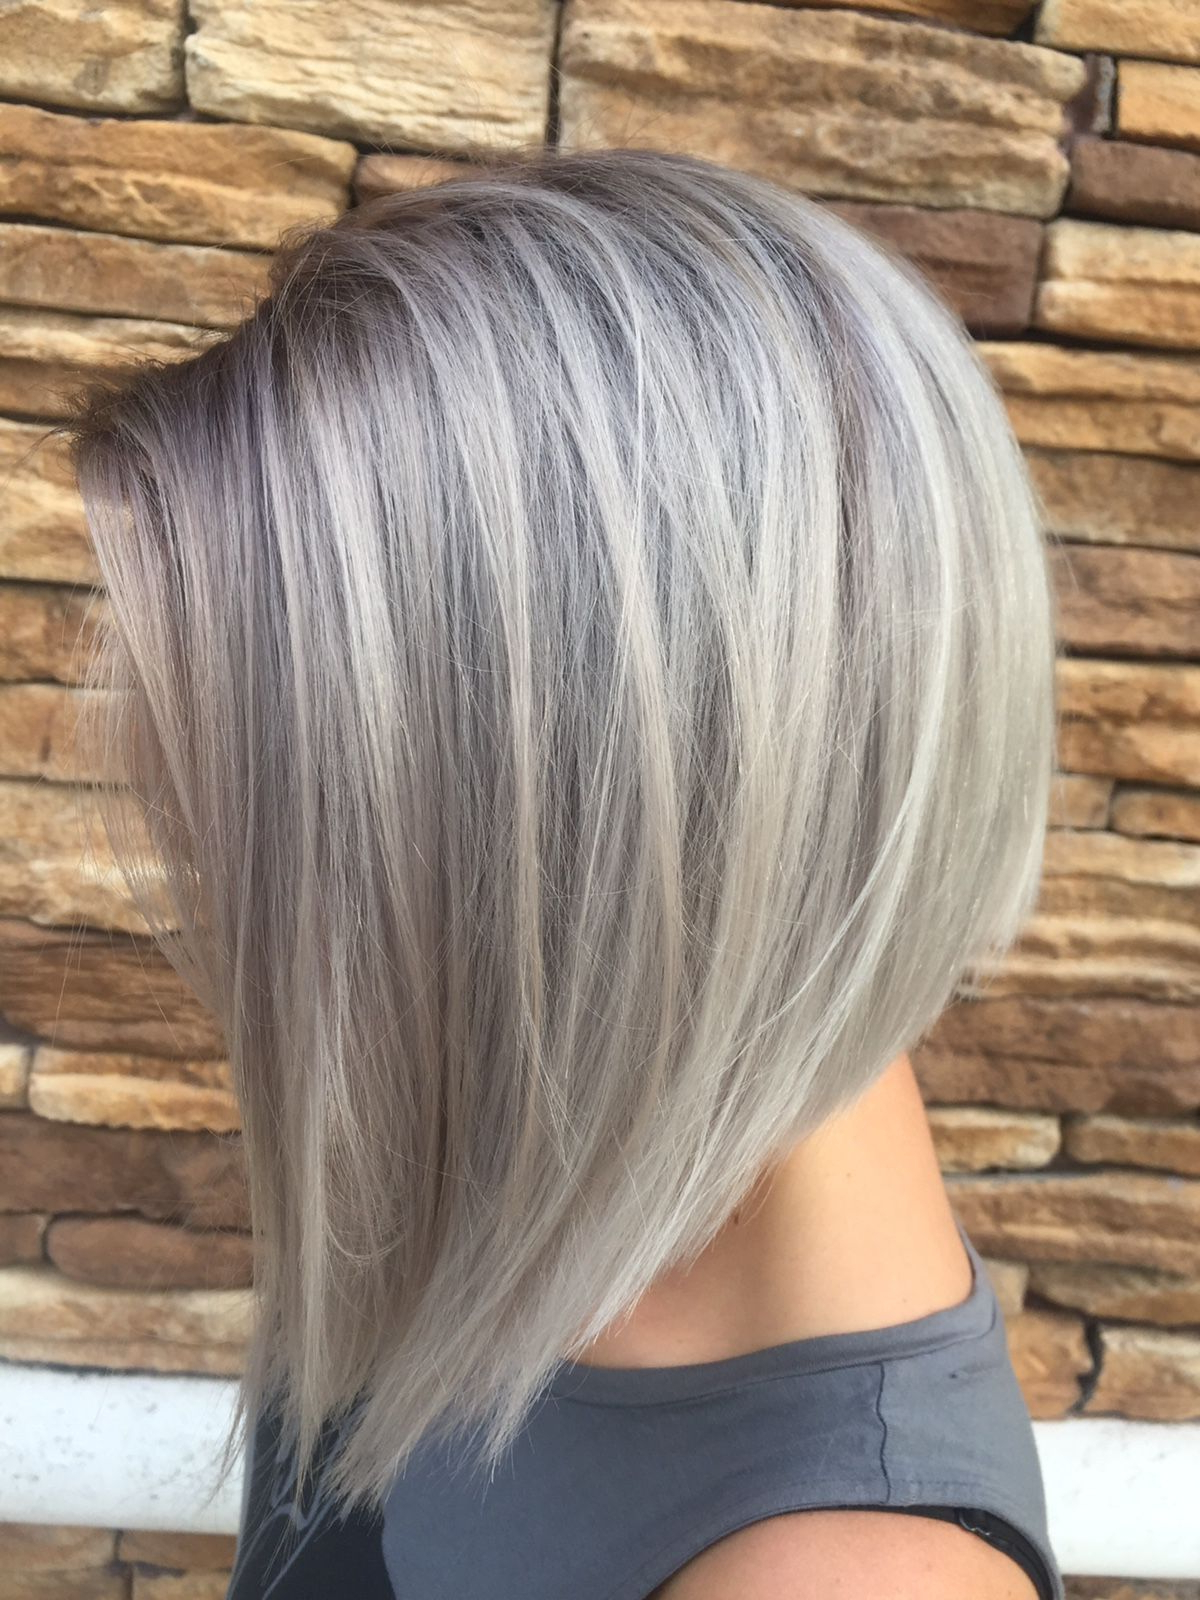 Beautiful Short Bob Hairstyles And Haircuts With Bangs | Hair Within Ash Blonde Short Hairstyles (View 14 of 25)